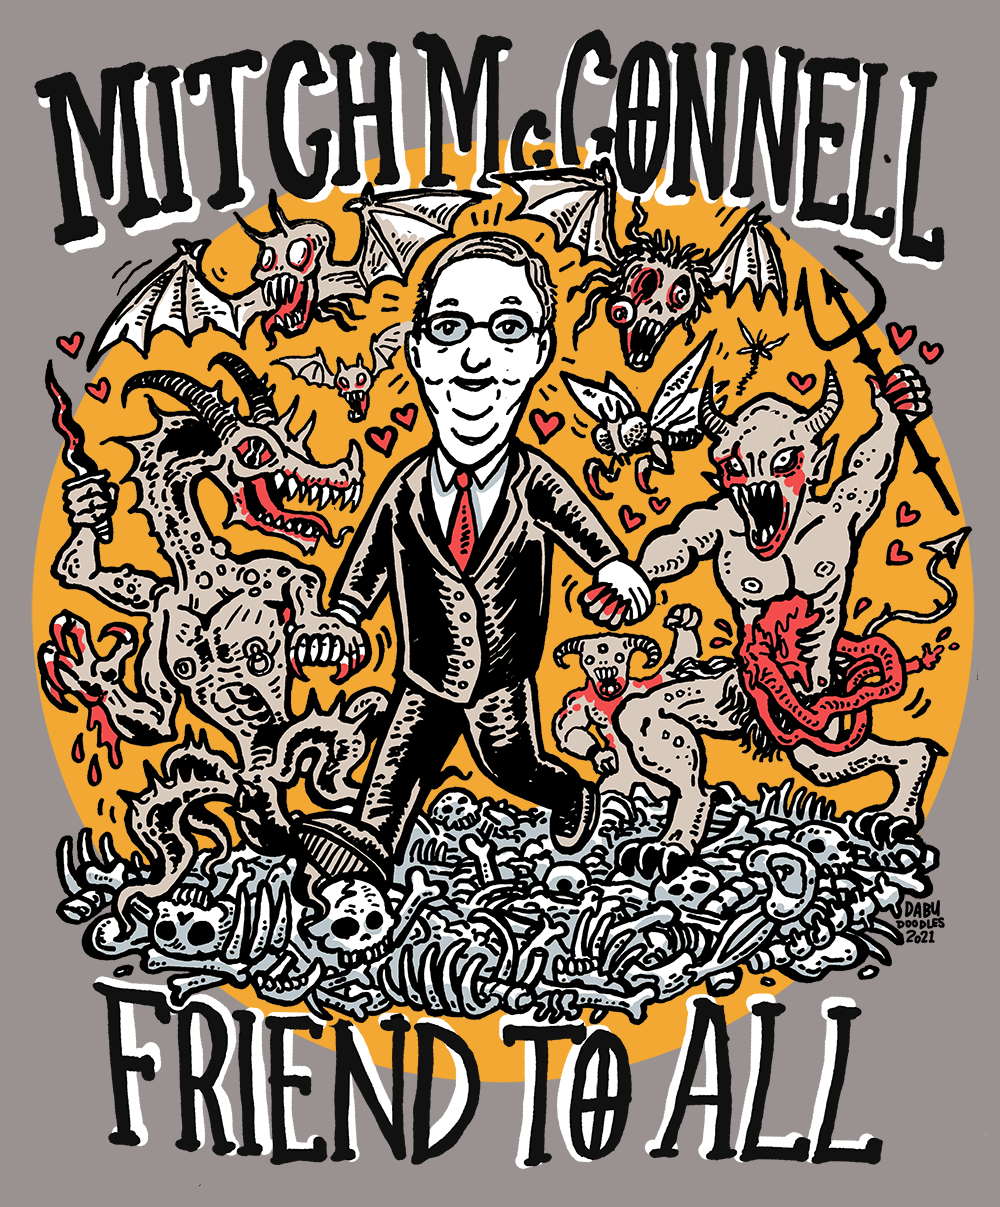 Mitch McConnell and Friends